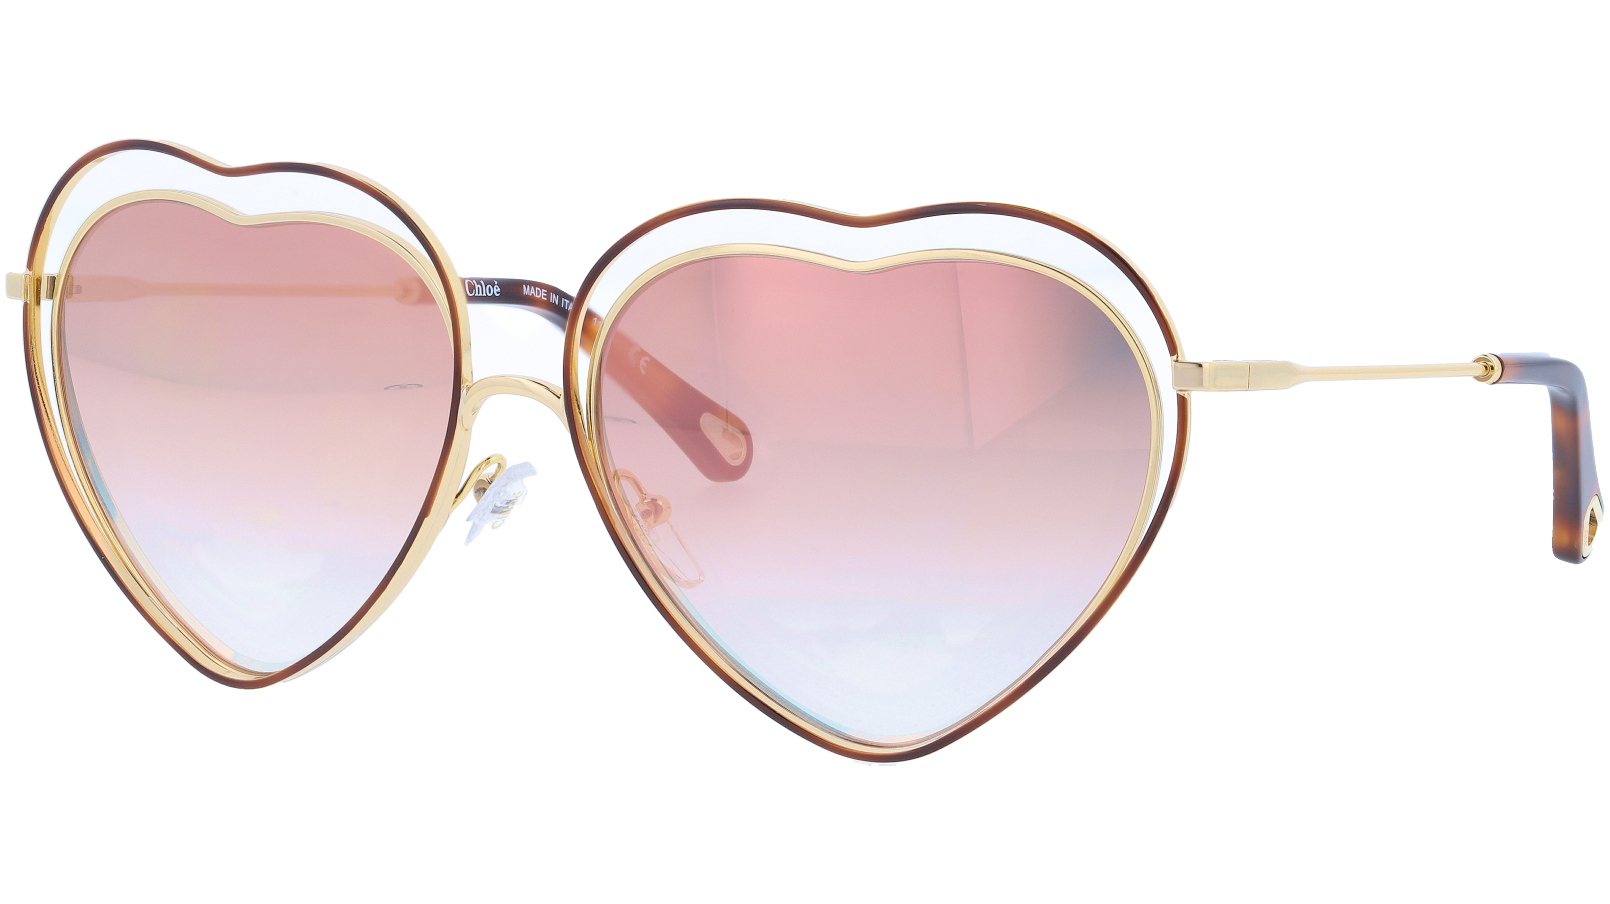 CHLOE CE131S 238 61 Havana Brown Peach Poppy Heart Sunglasses